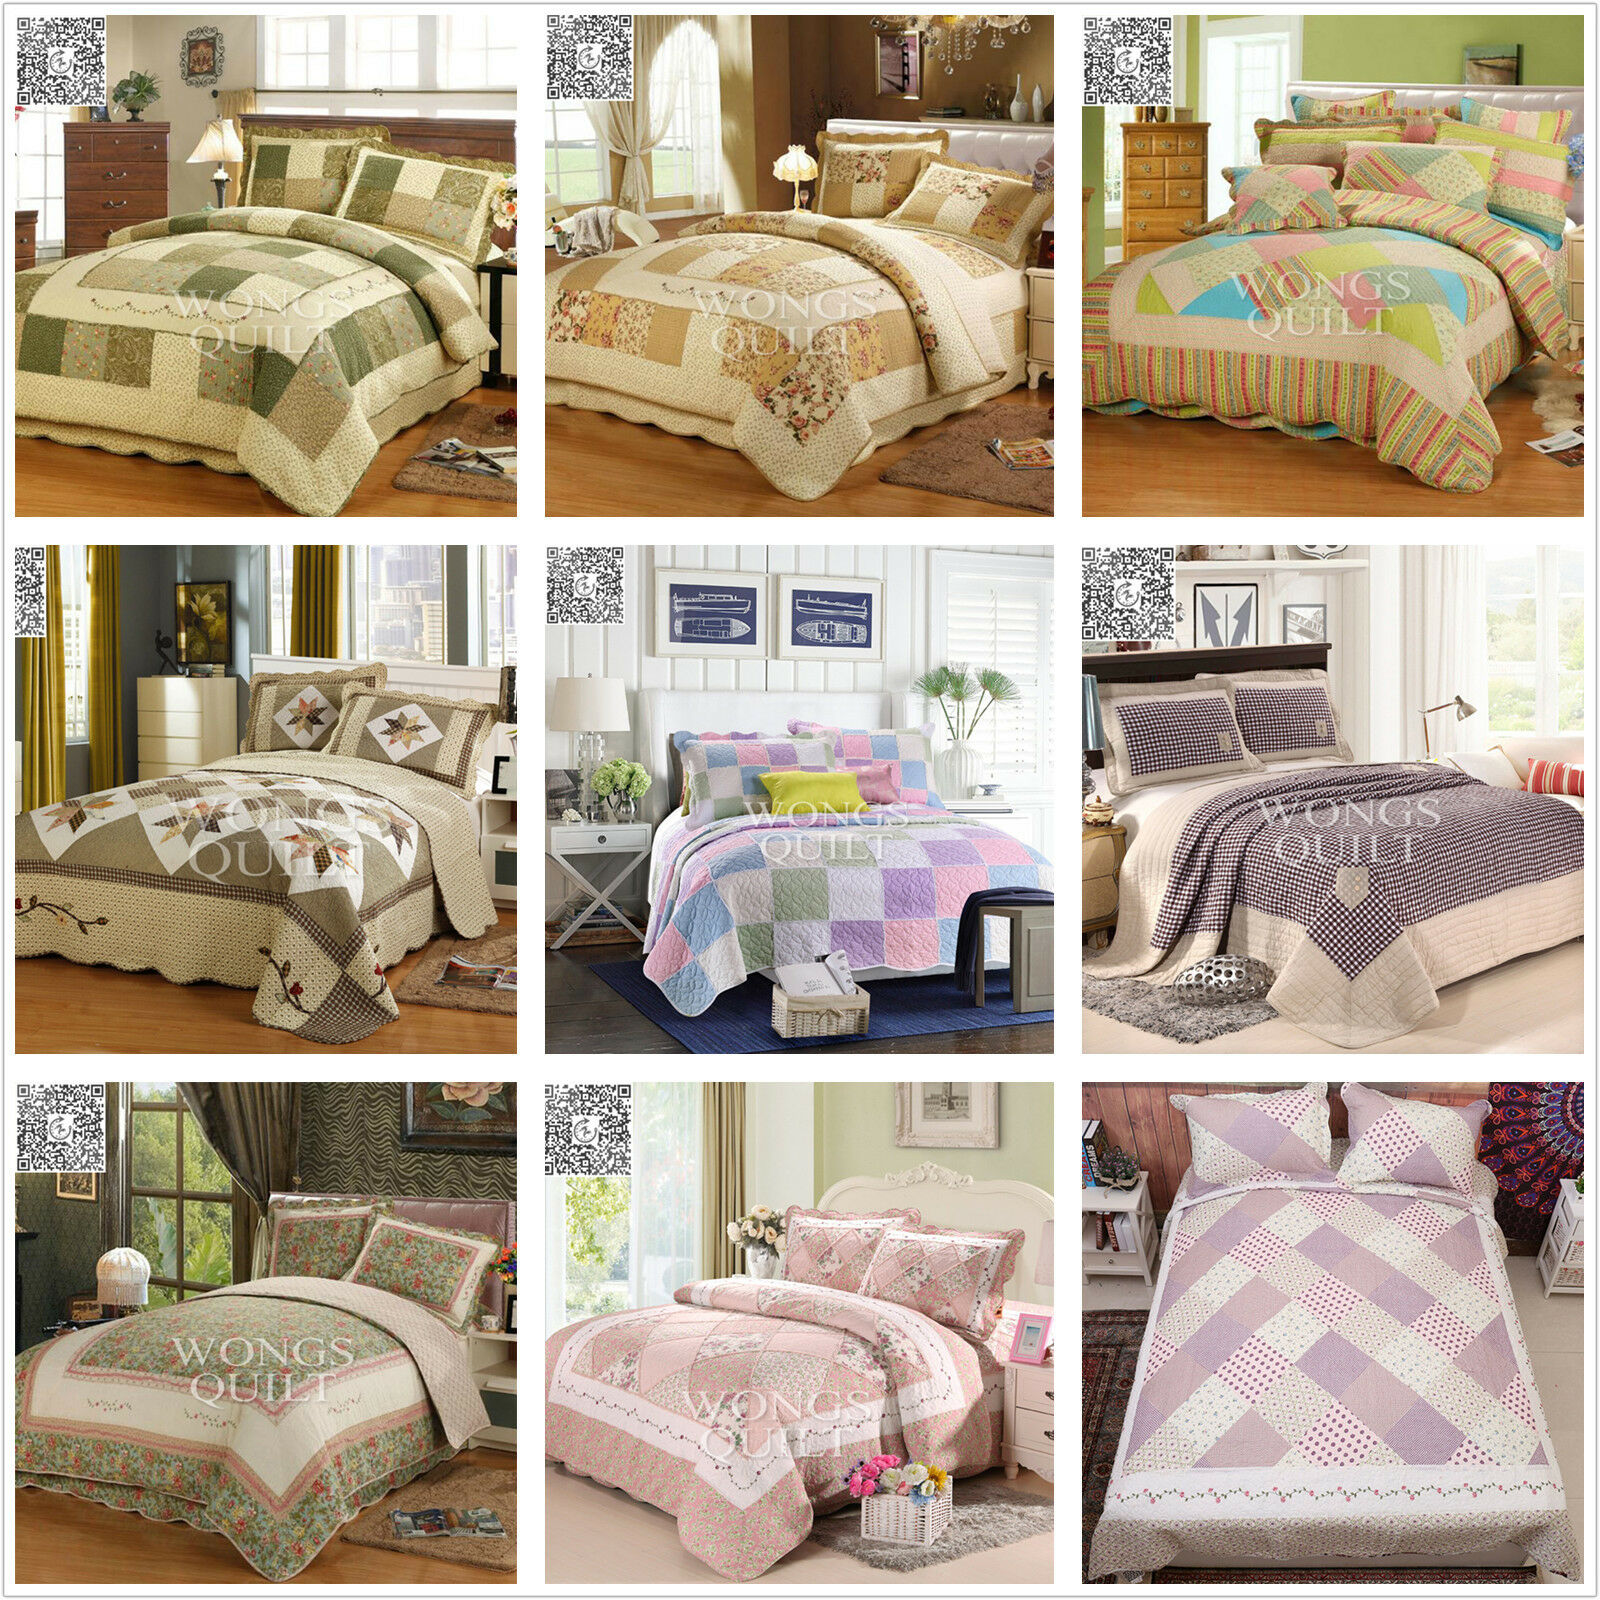 Bed Coverlet Details About Cotton Quilted Patchwork Bedspreads Set Queen King Size Bed Coverlet Throw Rug